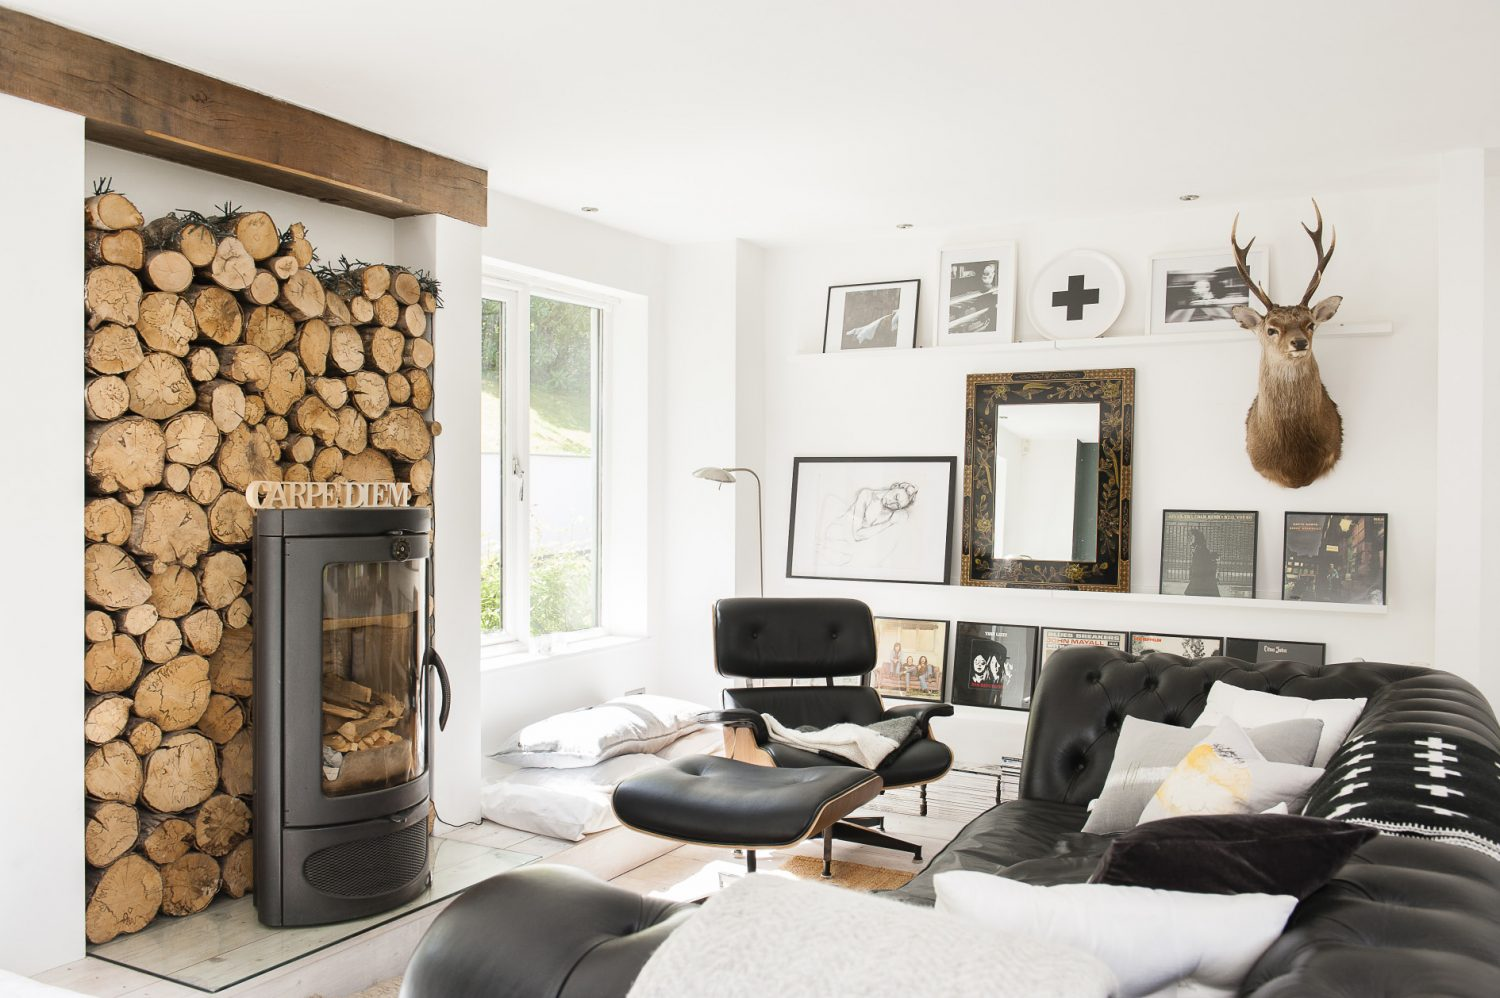 Centrepiece of the snug is an elegant contemporary Austroflamm woodburner backed by a bank of logs. Keeping it company are a Conran four-seater black leather Chesterfield and an Eames recliner. On the wall among the couple's framed classic vinyls is one of Sue's own charcoals.